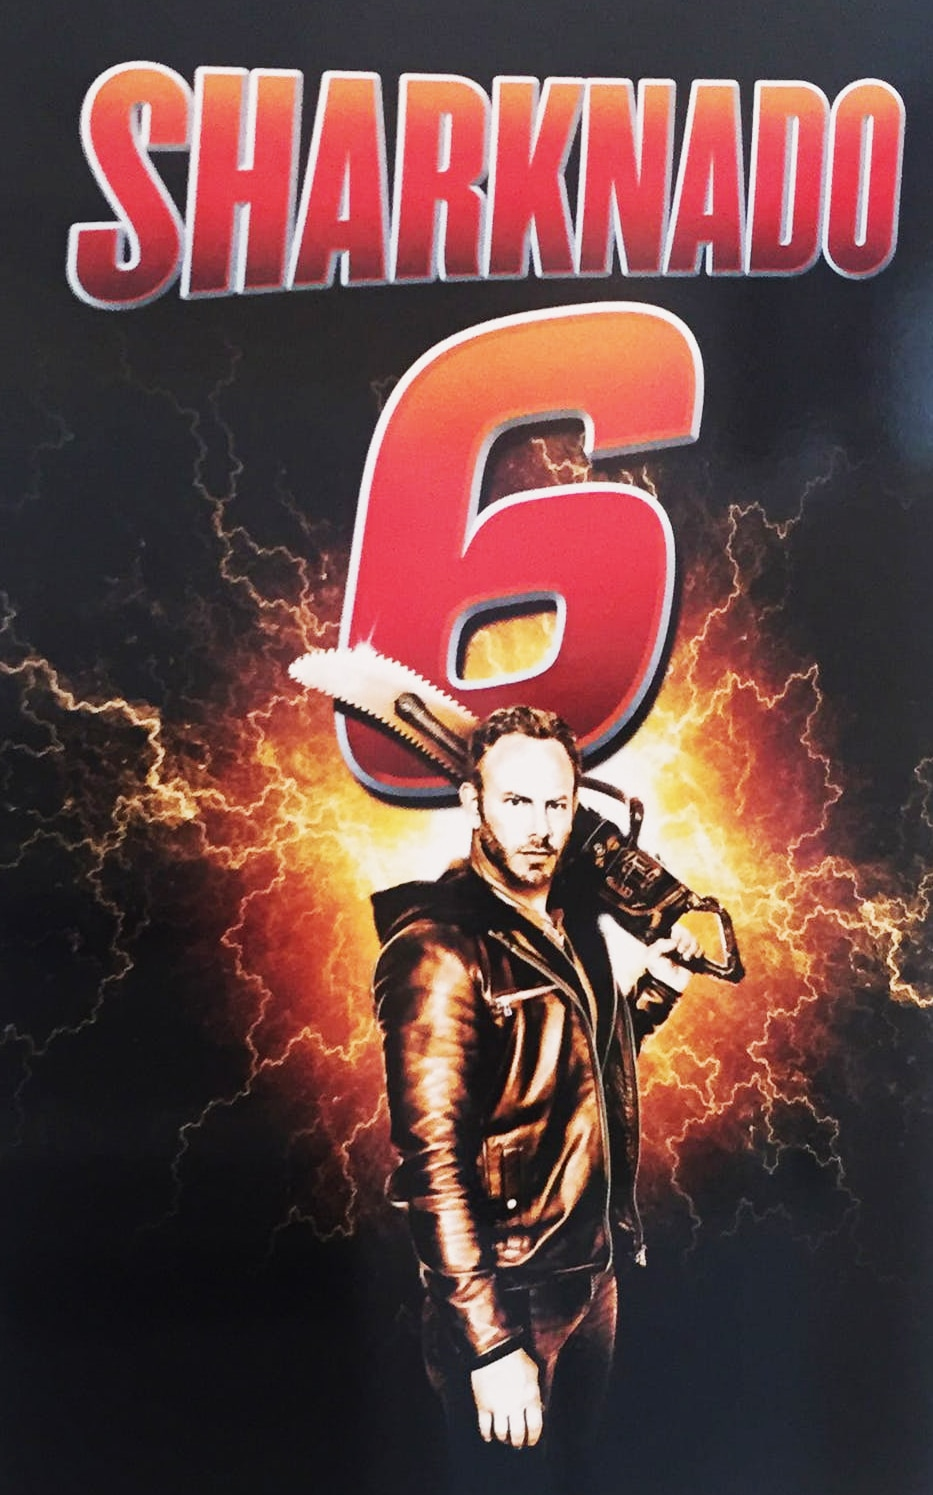 sharknado 6 poster - Time's Up for Sharknado with the Sixth and Final Time-Traveling Sequel